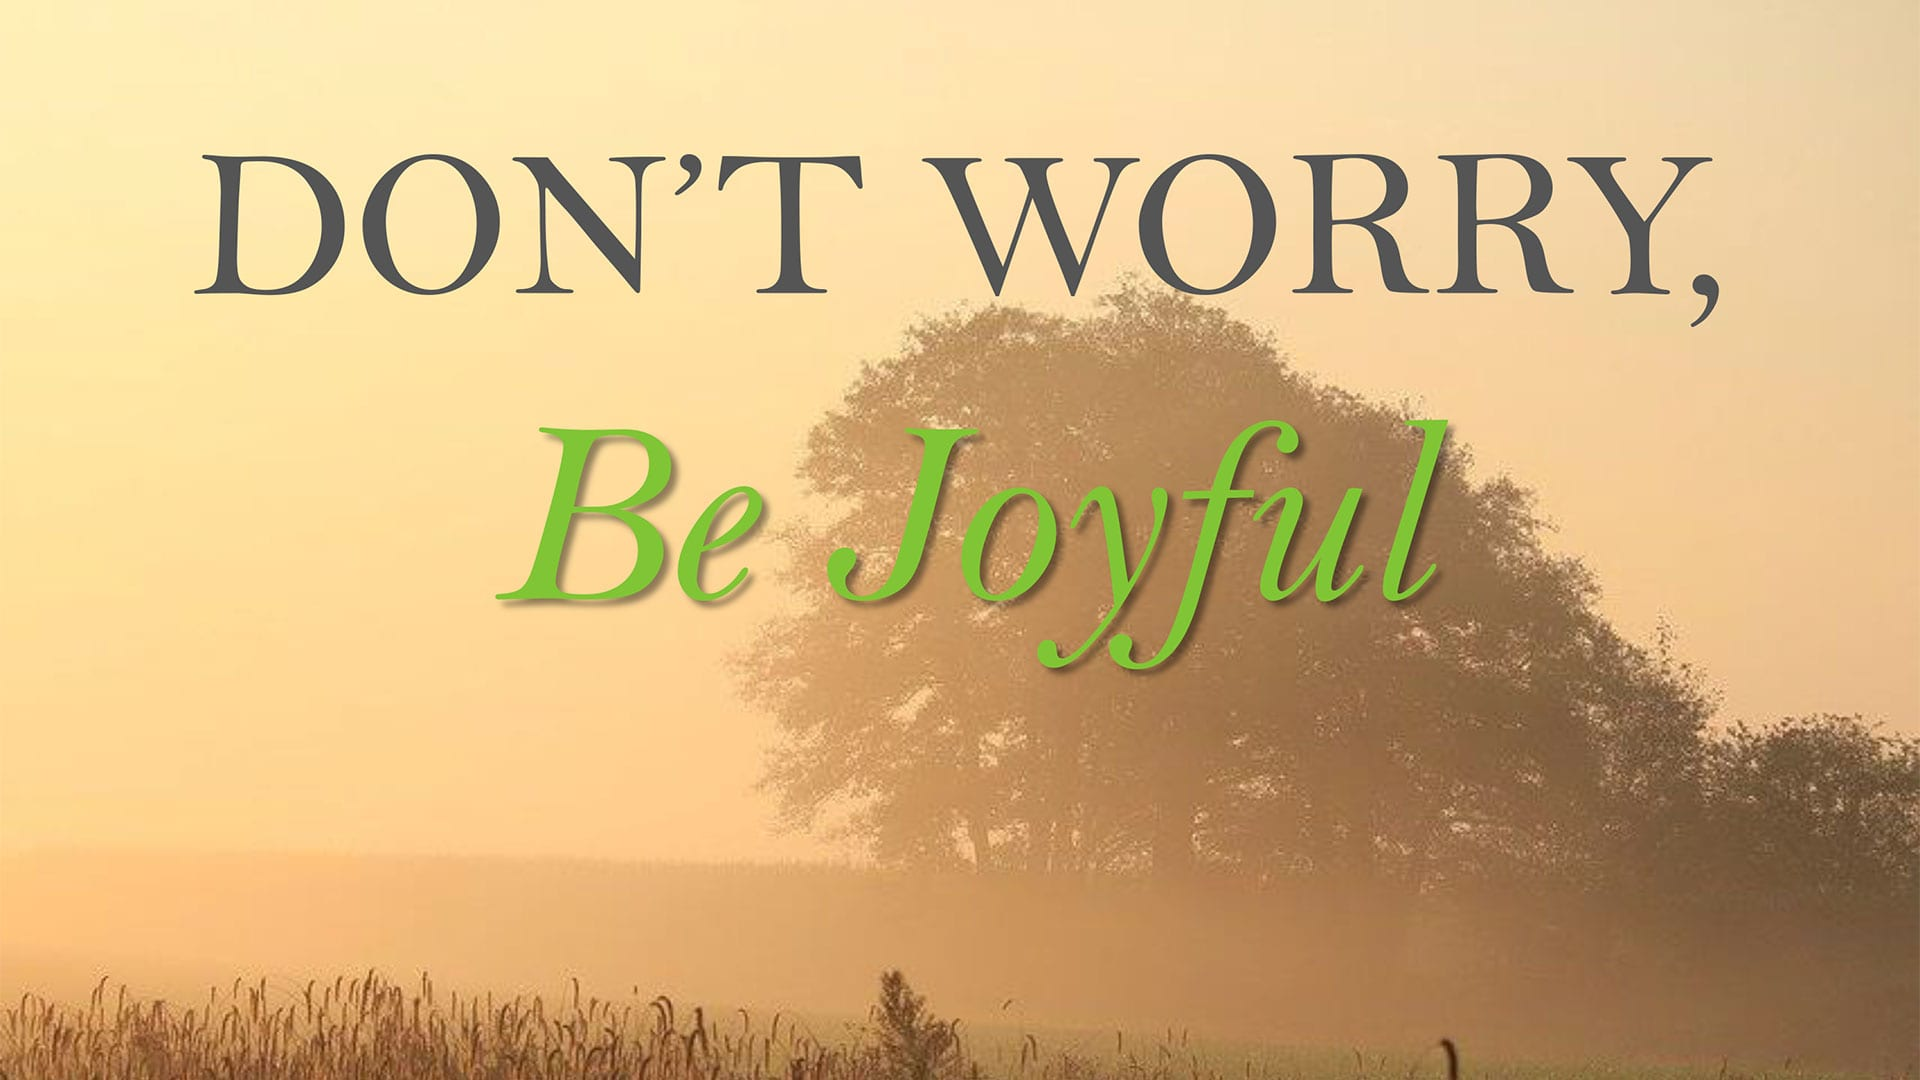 CBC_2020_11_15_dont_worry_be_joyful_Outline_Thumbnail_1920x1080